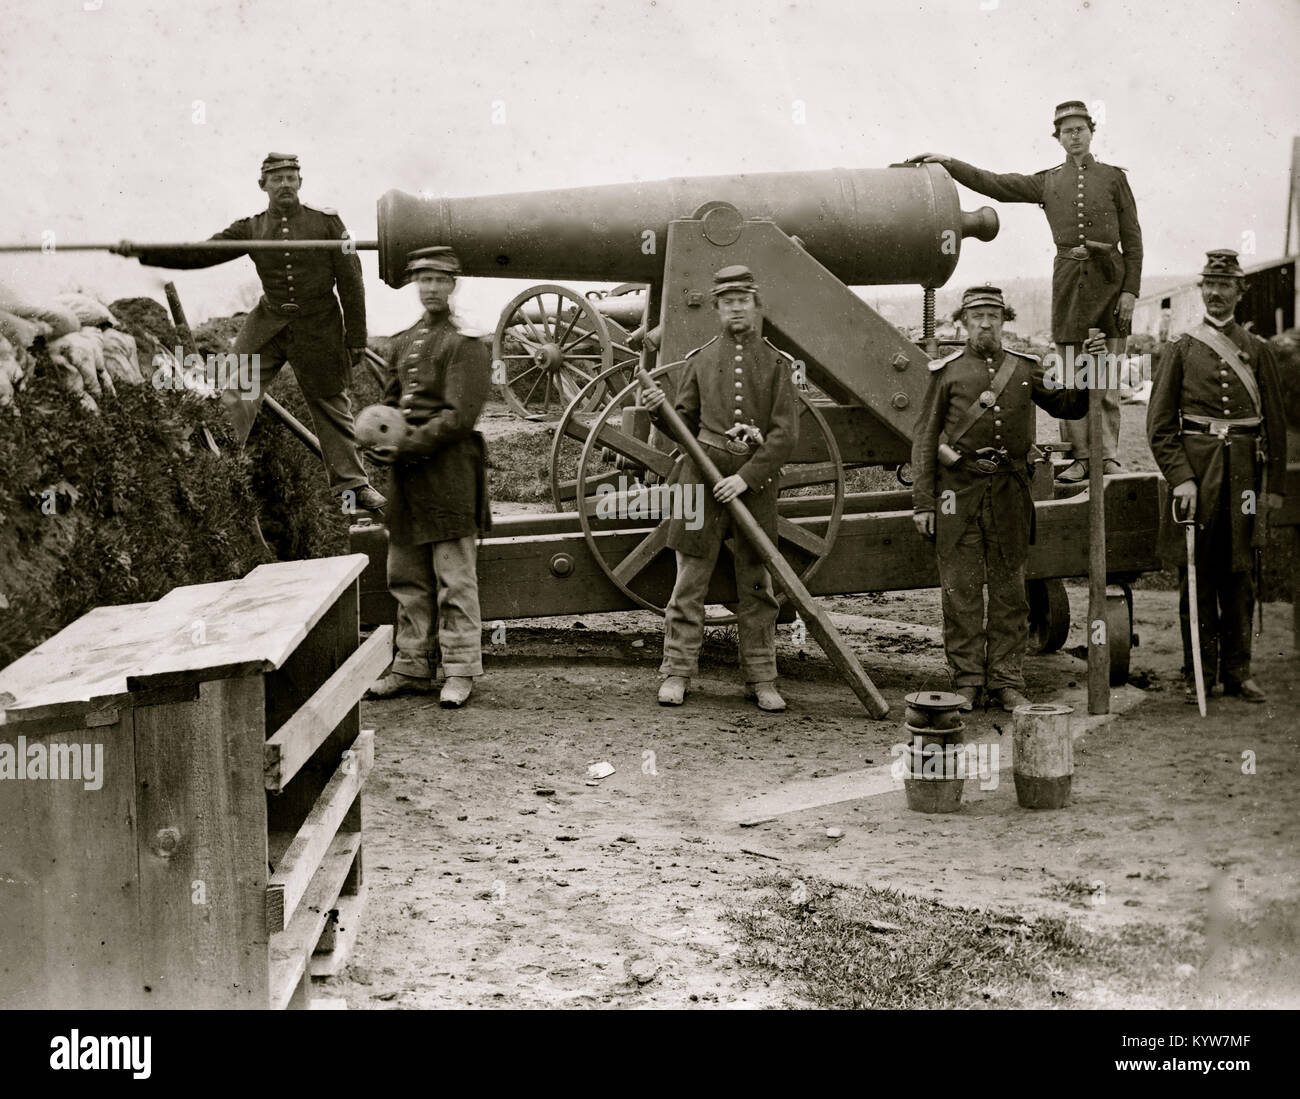 Arlington, Virginia. Soldiers of 4th New York heavy Artillery loading 24-pdr. siege gun on wooden barbette - Stock Image